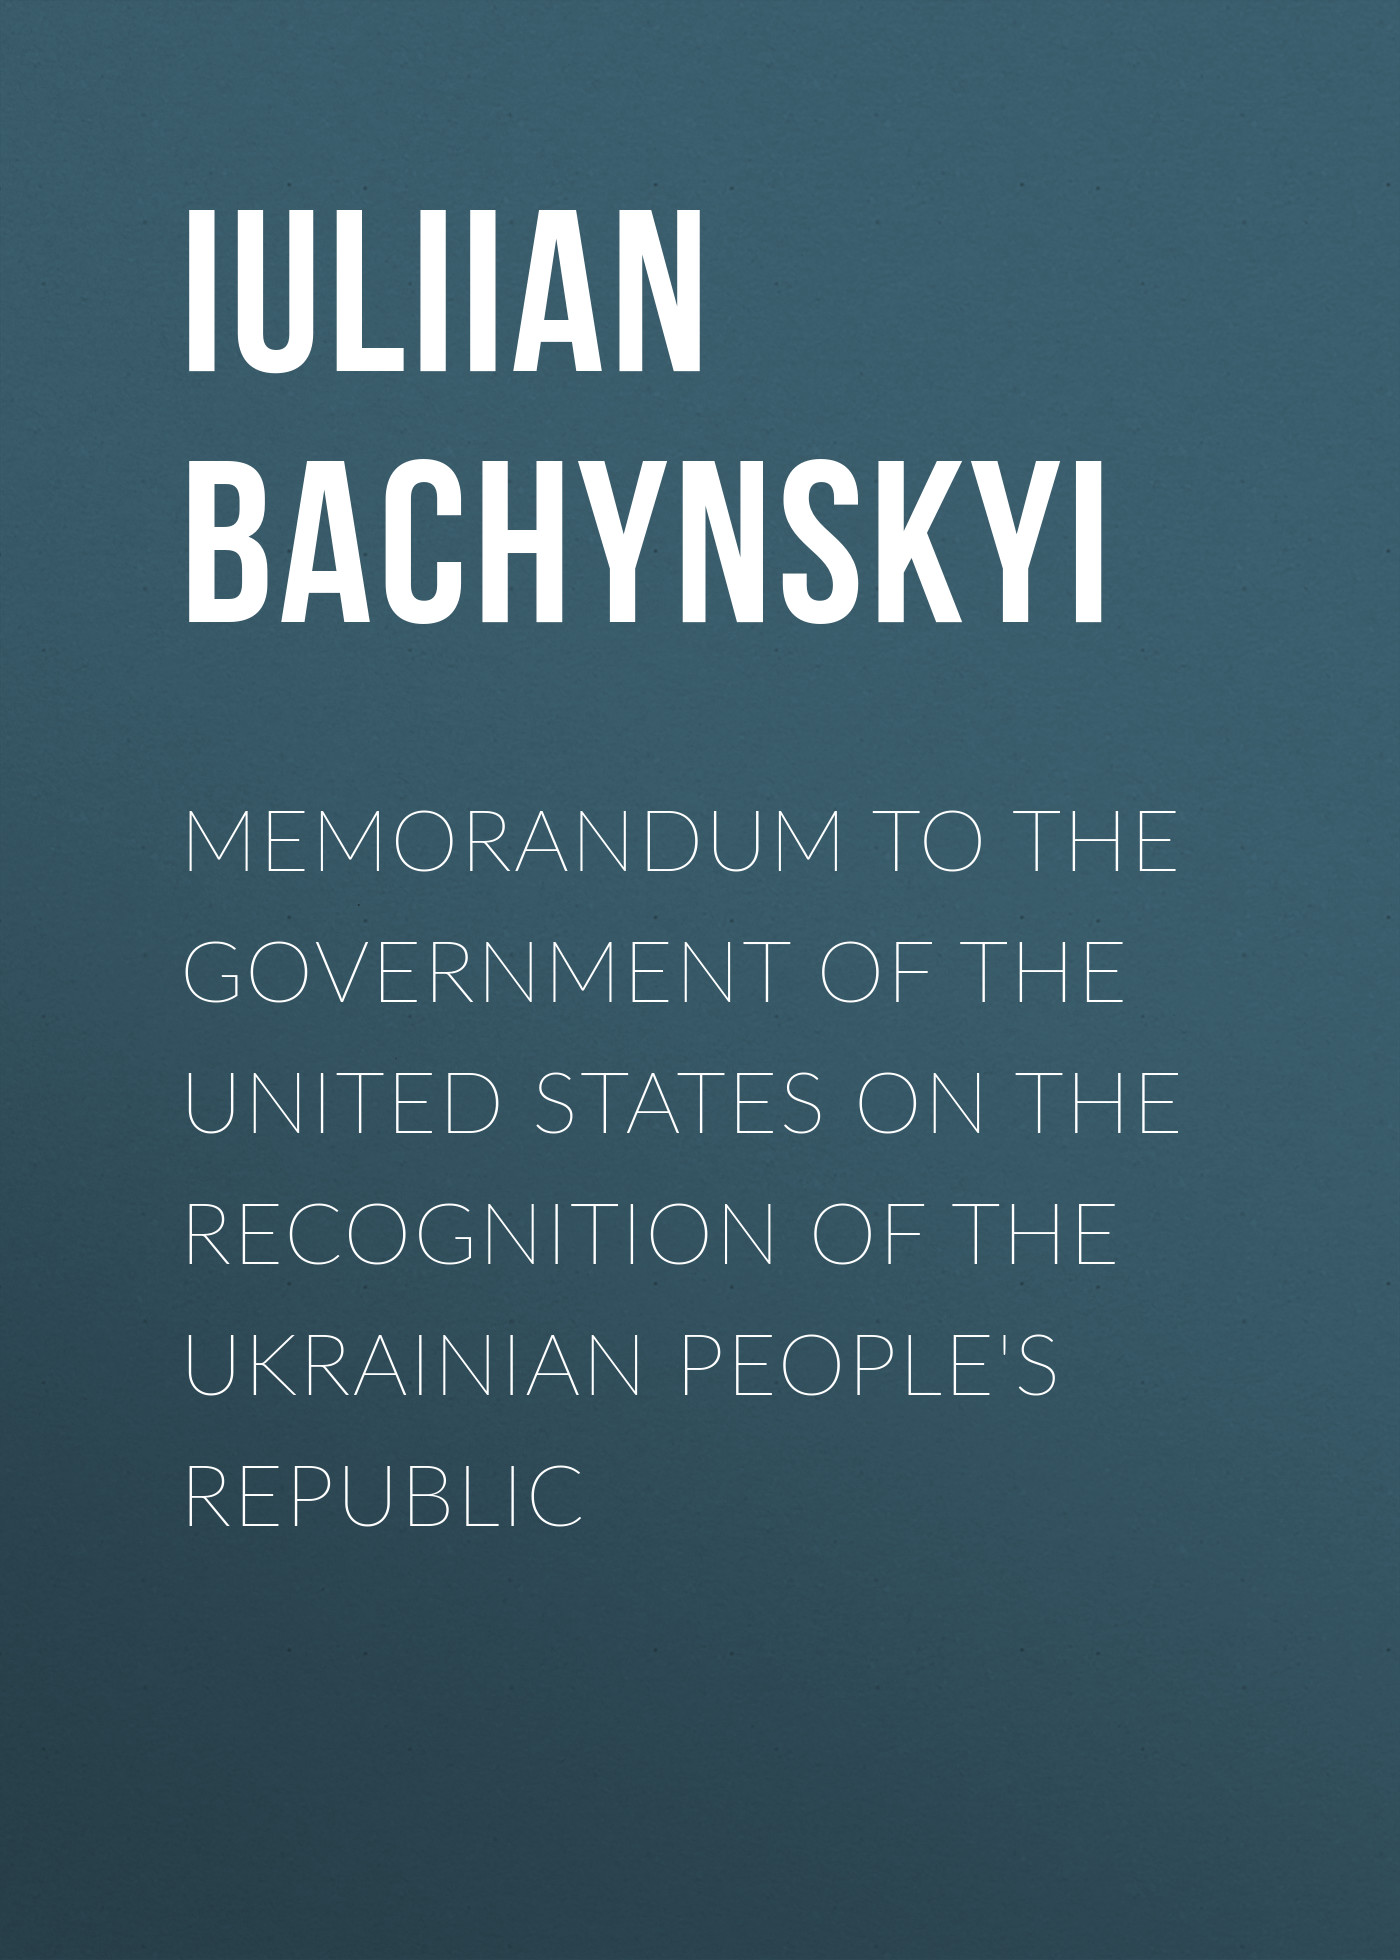 Фото - Bachynskyi IUliian Memorandum to the Government of the United States on the Recognition of the Ukrainian People's Republic the penguin german phrasebook